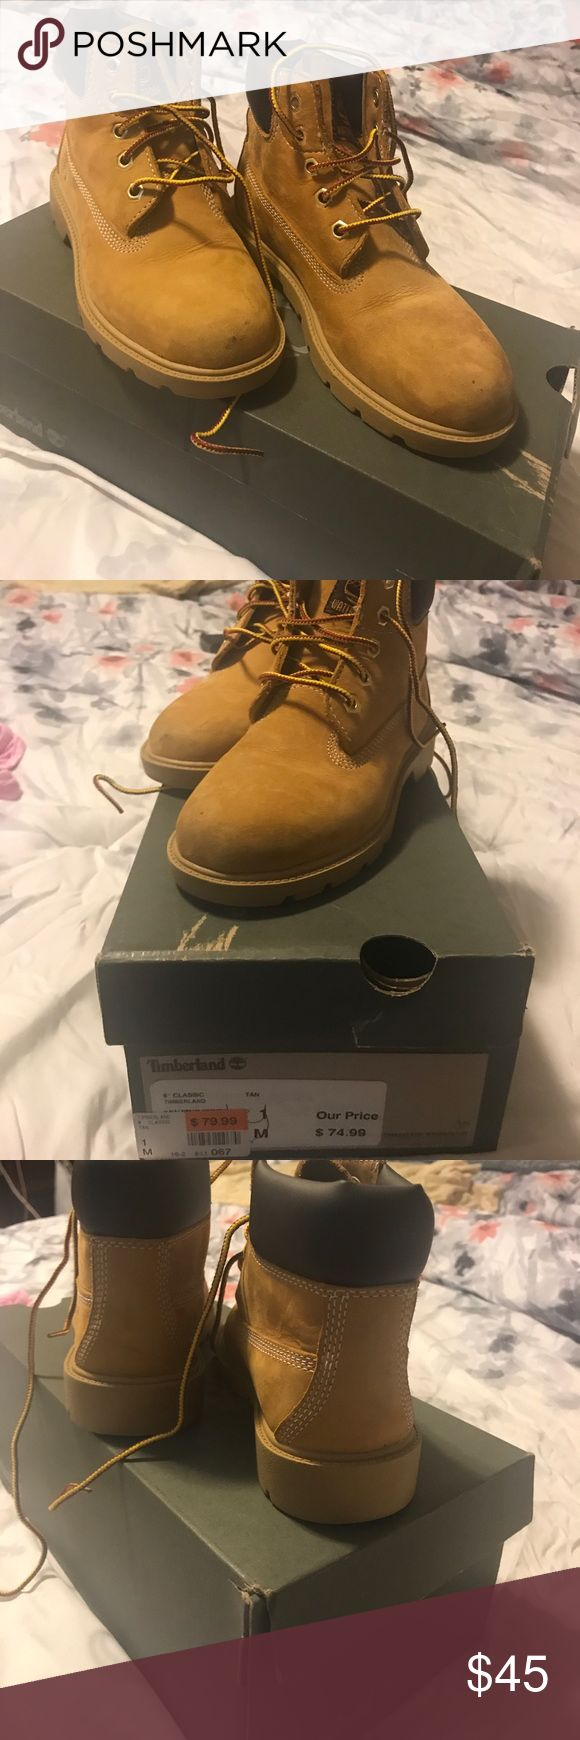 Kids Timberland Boots Gently worn just need a little cleaning in the front Timberland Boots Timberland Shoes Boots